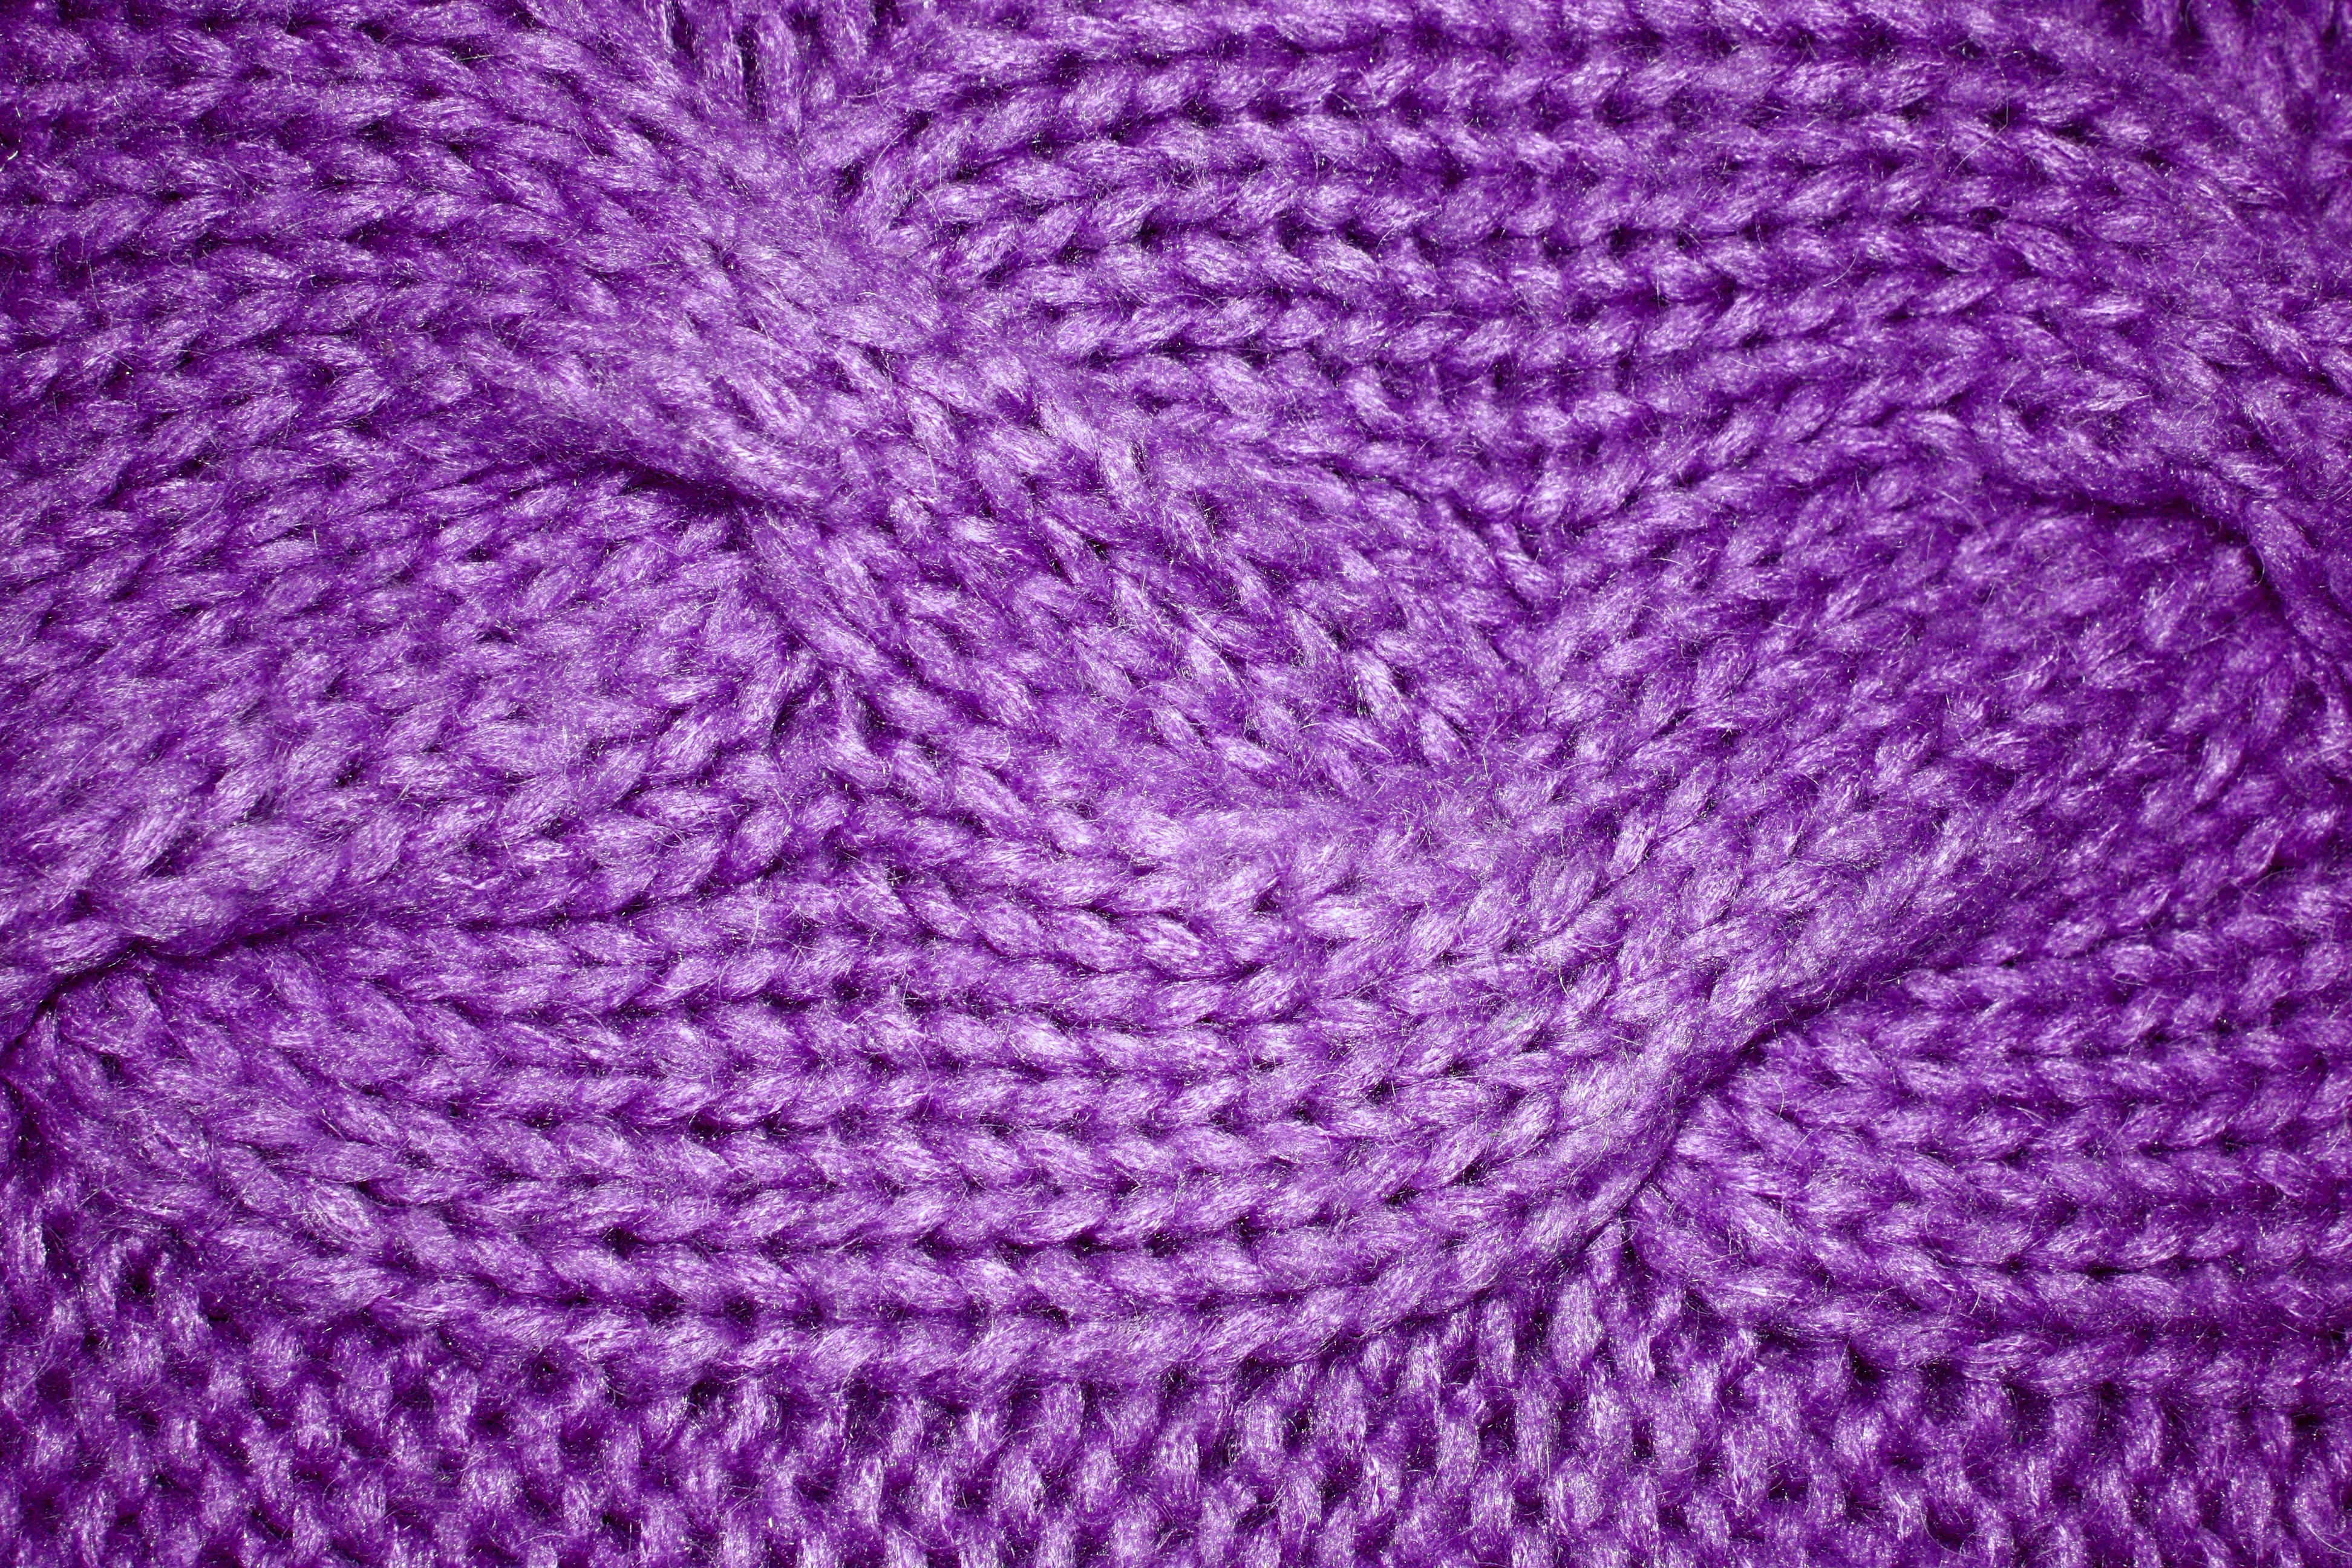 Free Crochet Knitting Patterns : Purple Cable Knit Pattern Texture Picture Free Photograph Photos ...